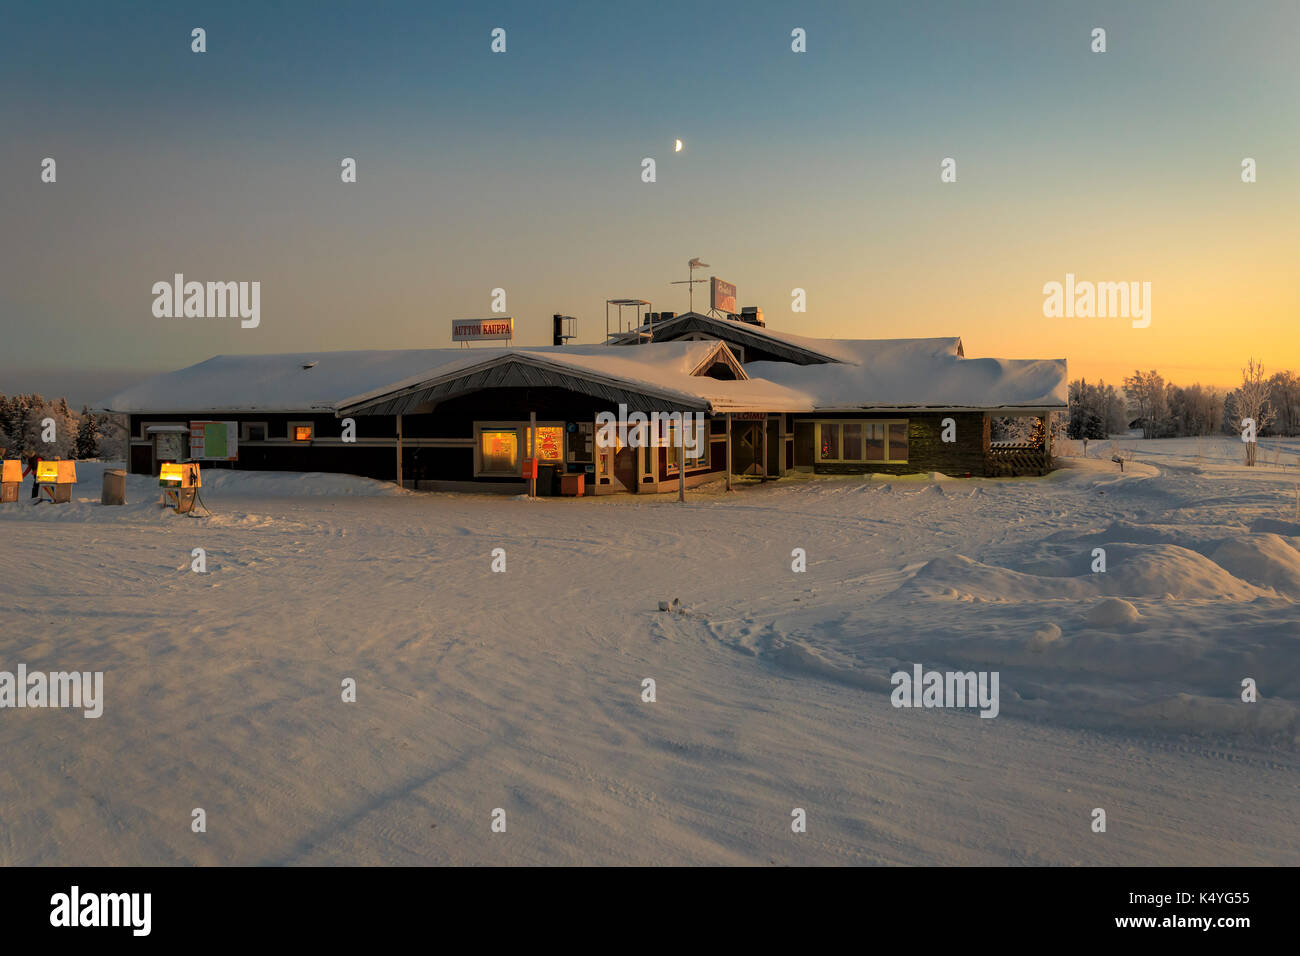 House in the village in winter - Stock Image